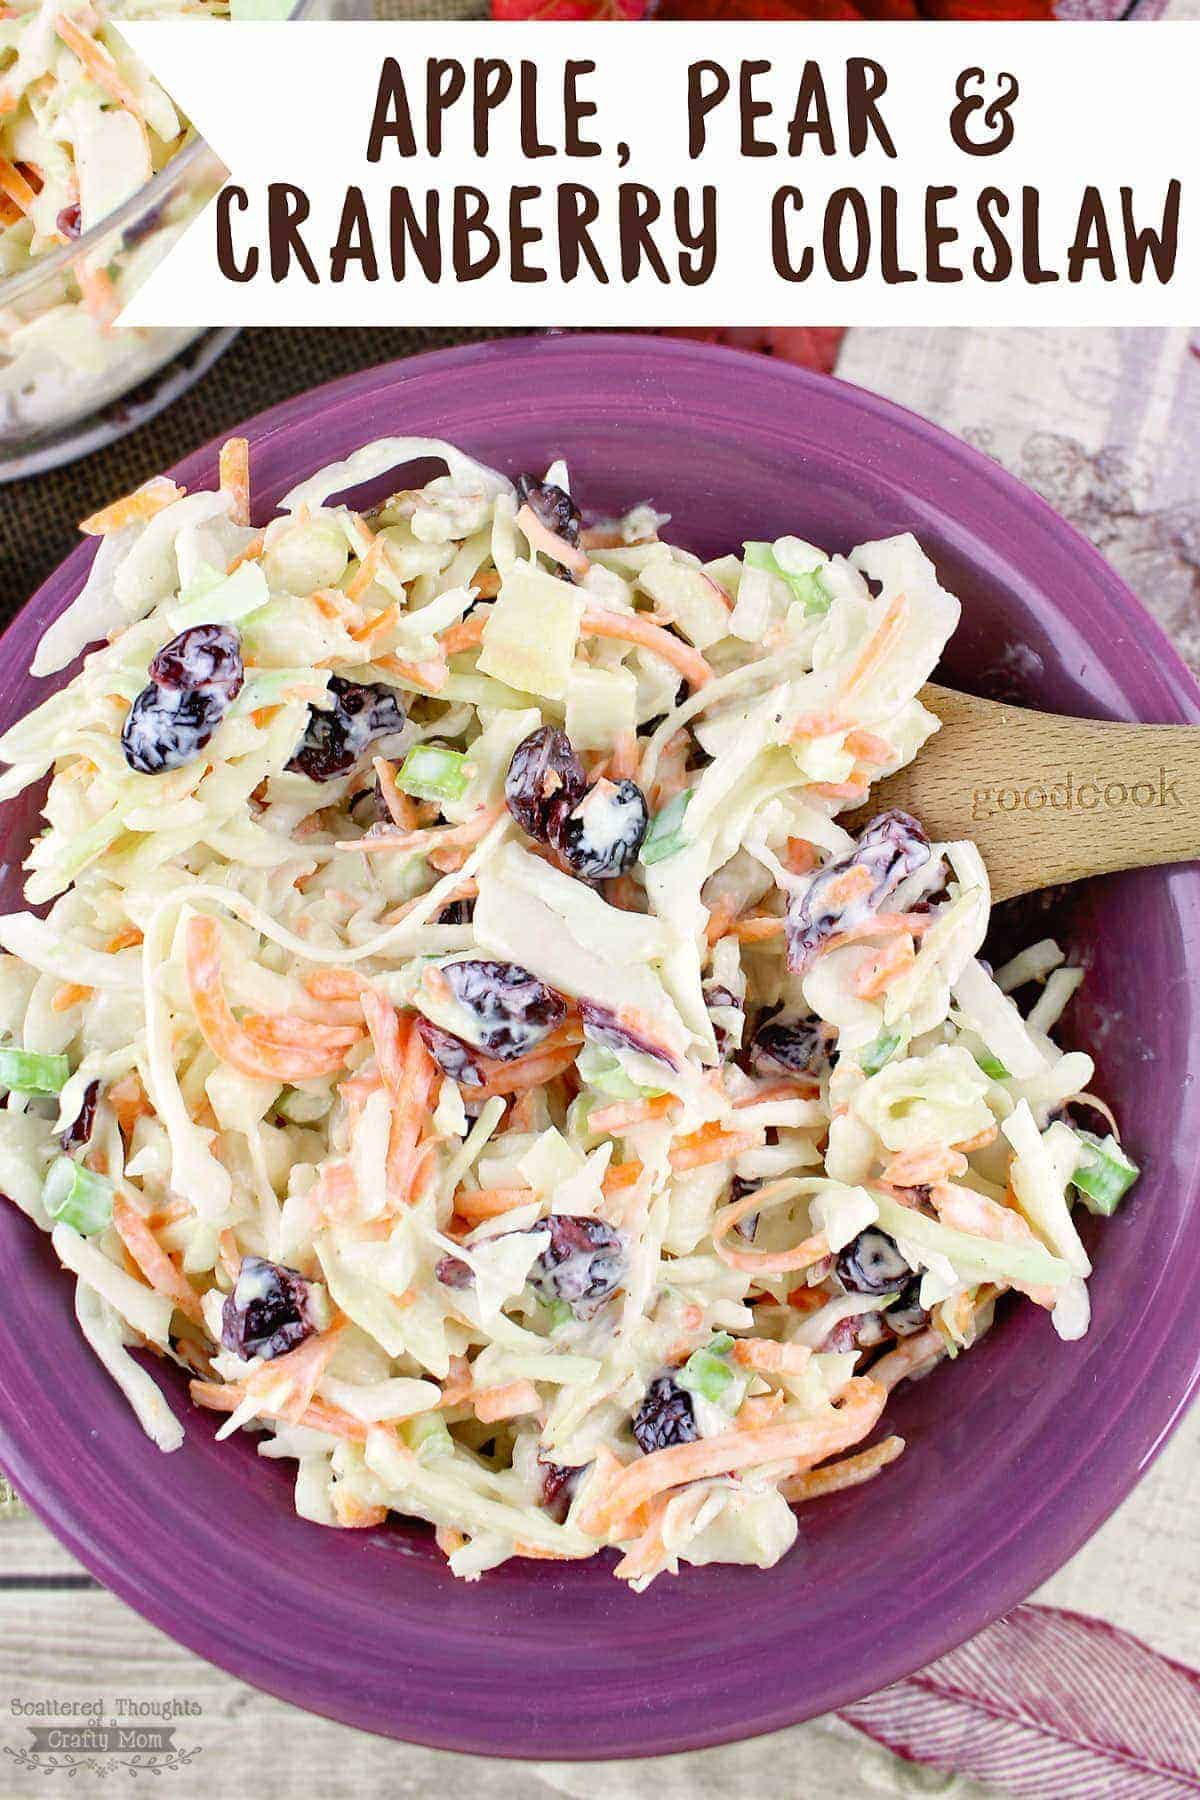 Apple Pear and Cranberry Coleslaw is crunchy, sweet and tangy, the perfect side dish for fall potlucks and so many other occasions.